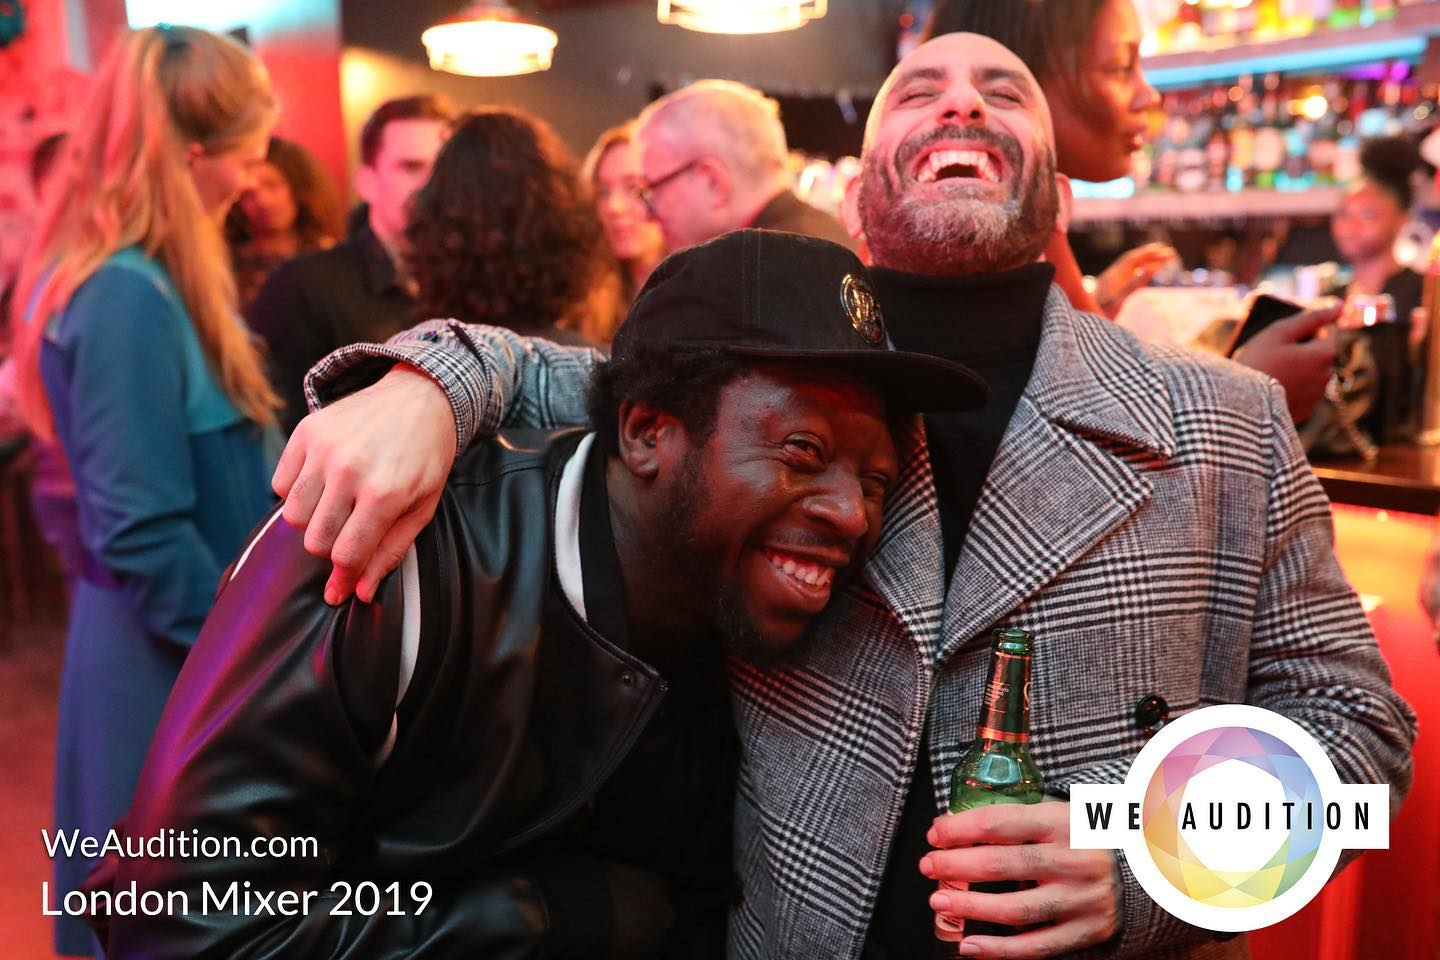 London Mixer Nov 2019